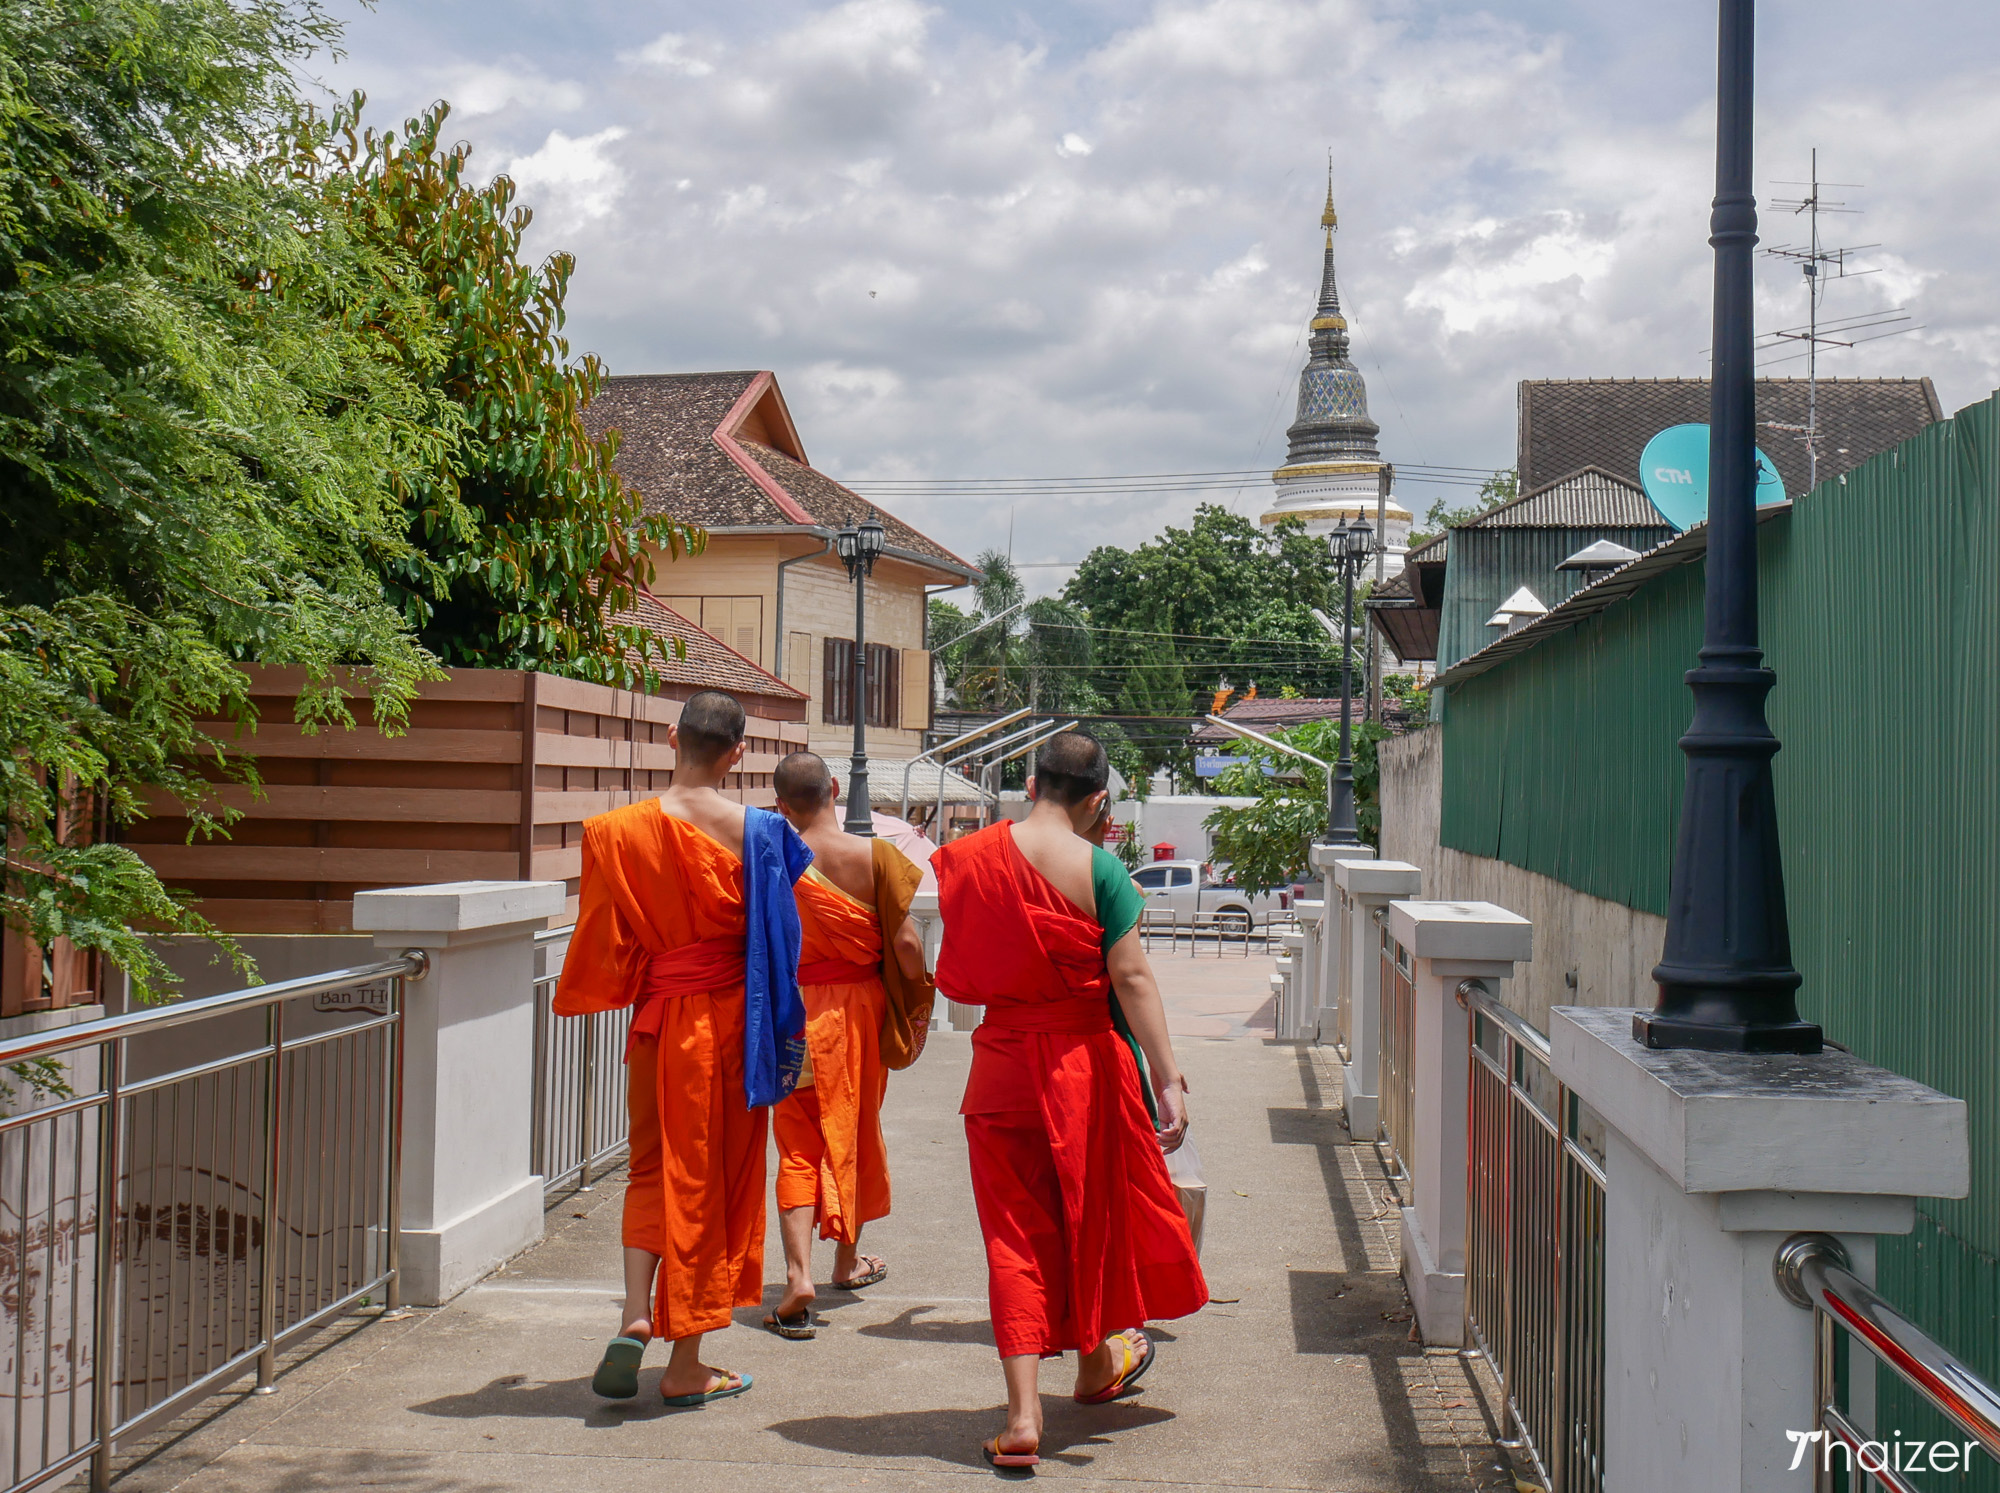 monks walk across the Chansom Memorial Footbridge in Chiang Mai